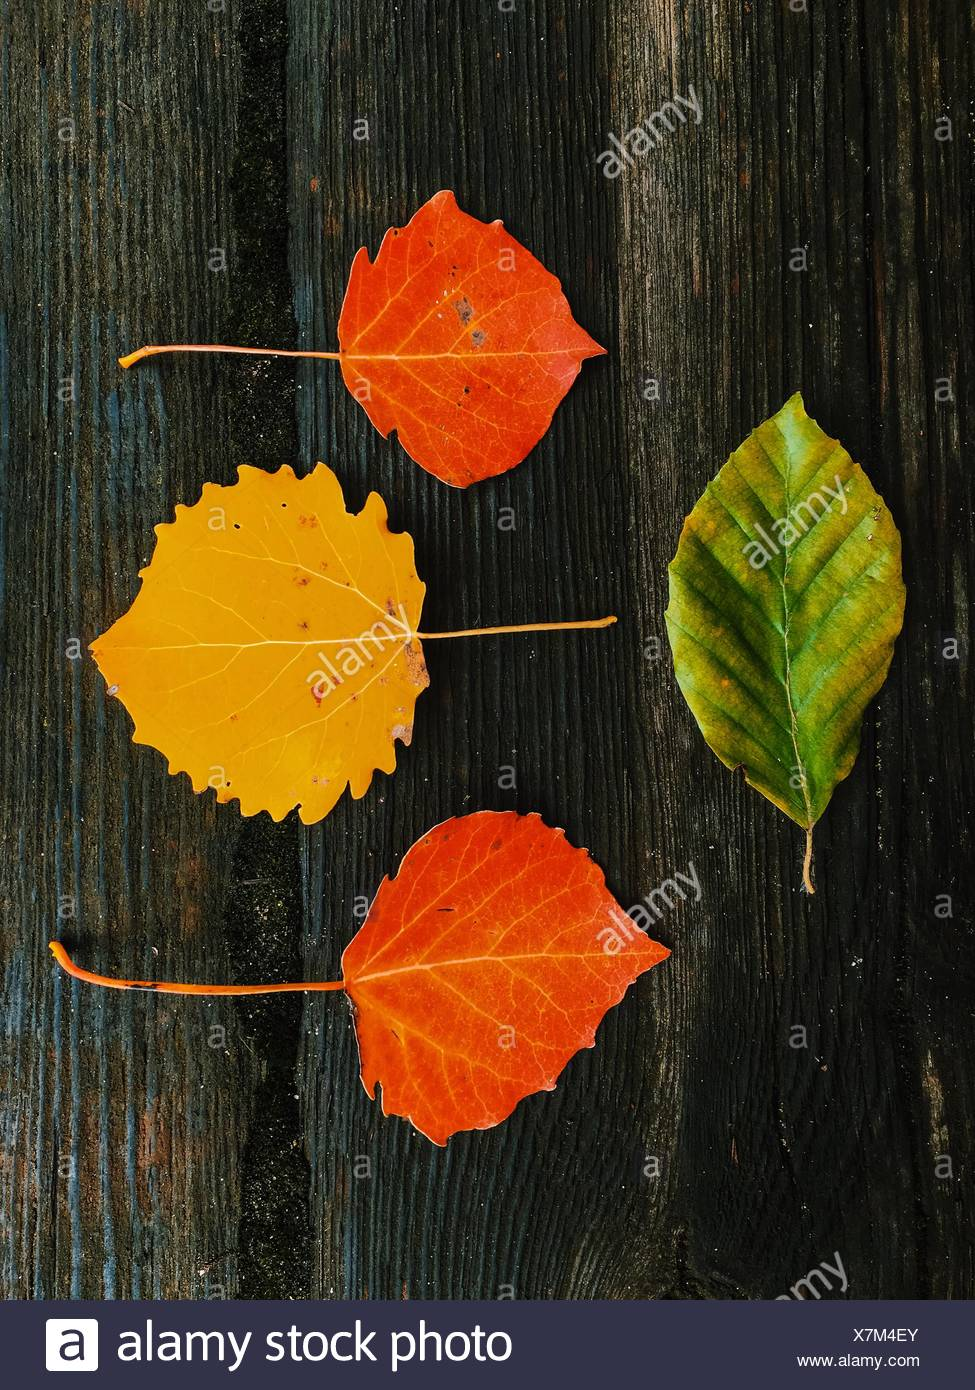 High Angle View of Autumn Leaves On Table Photo Stock